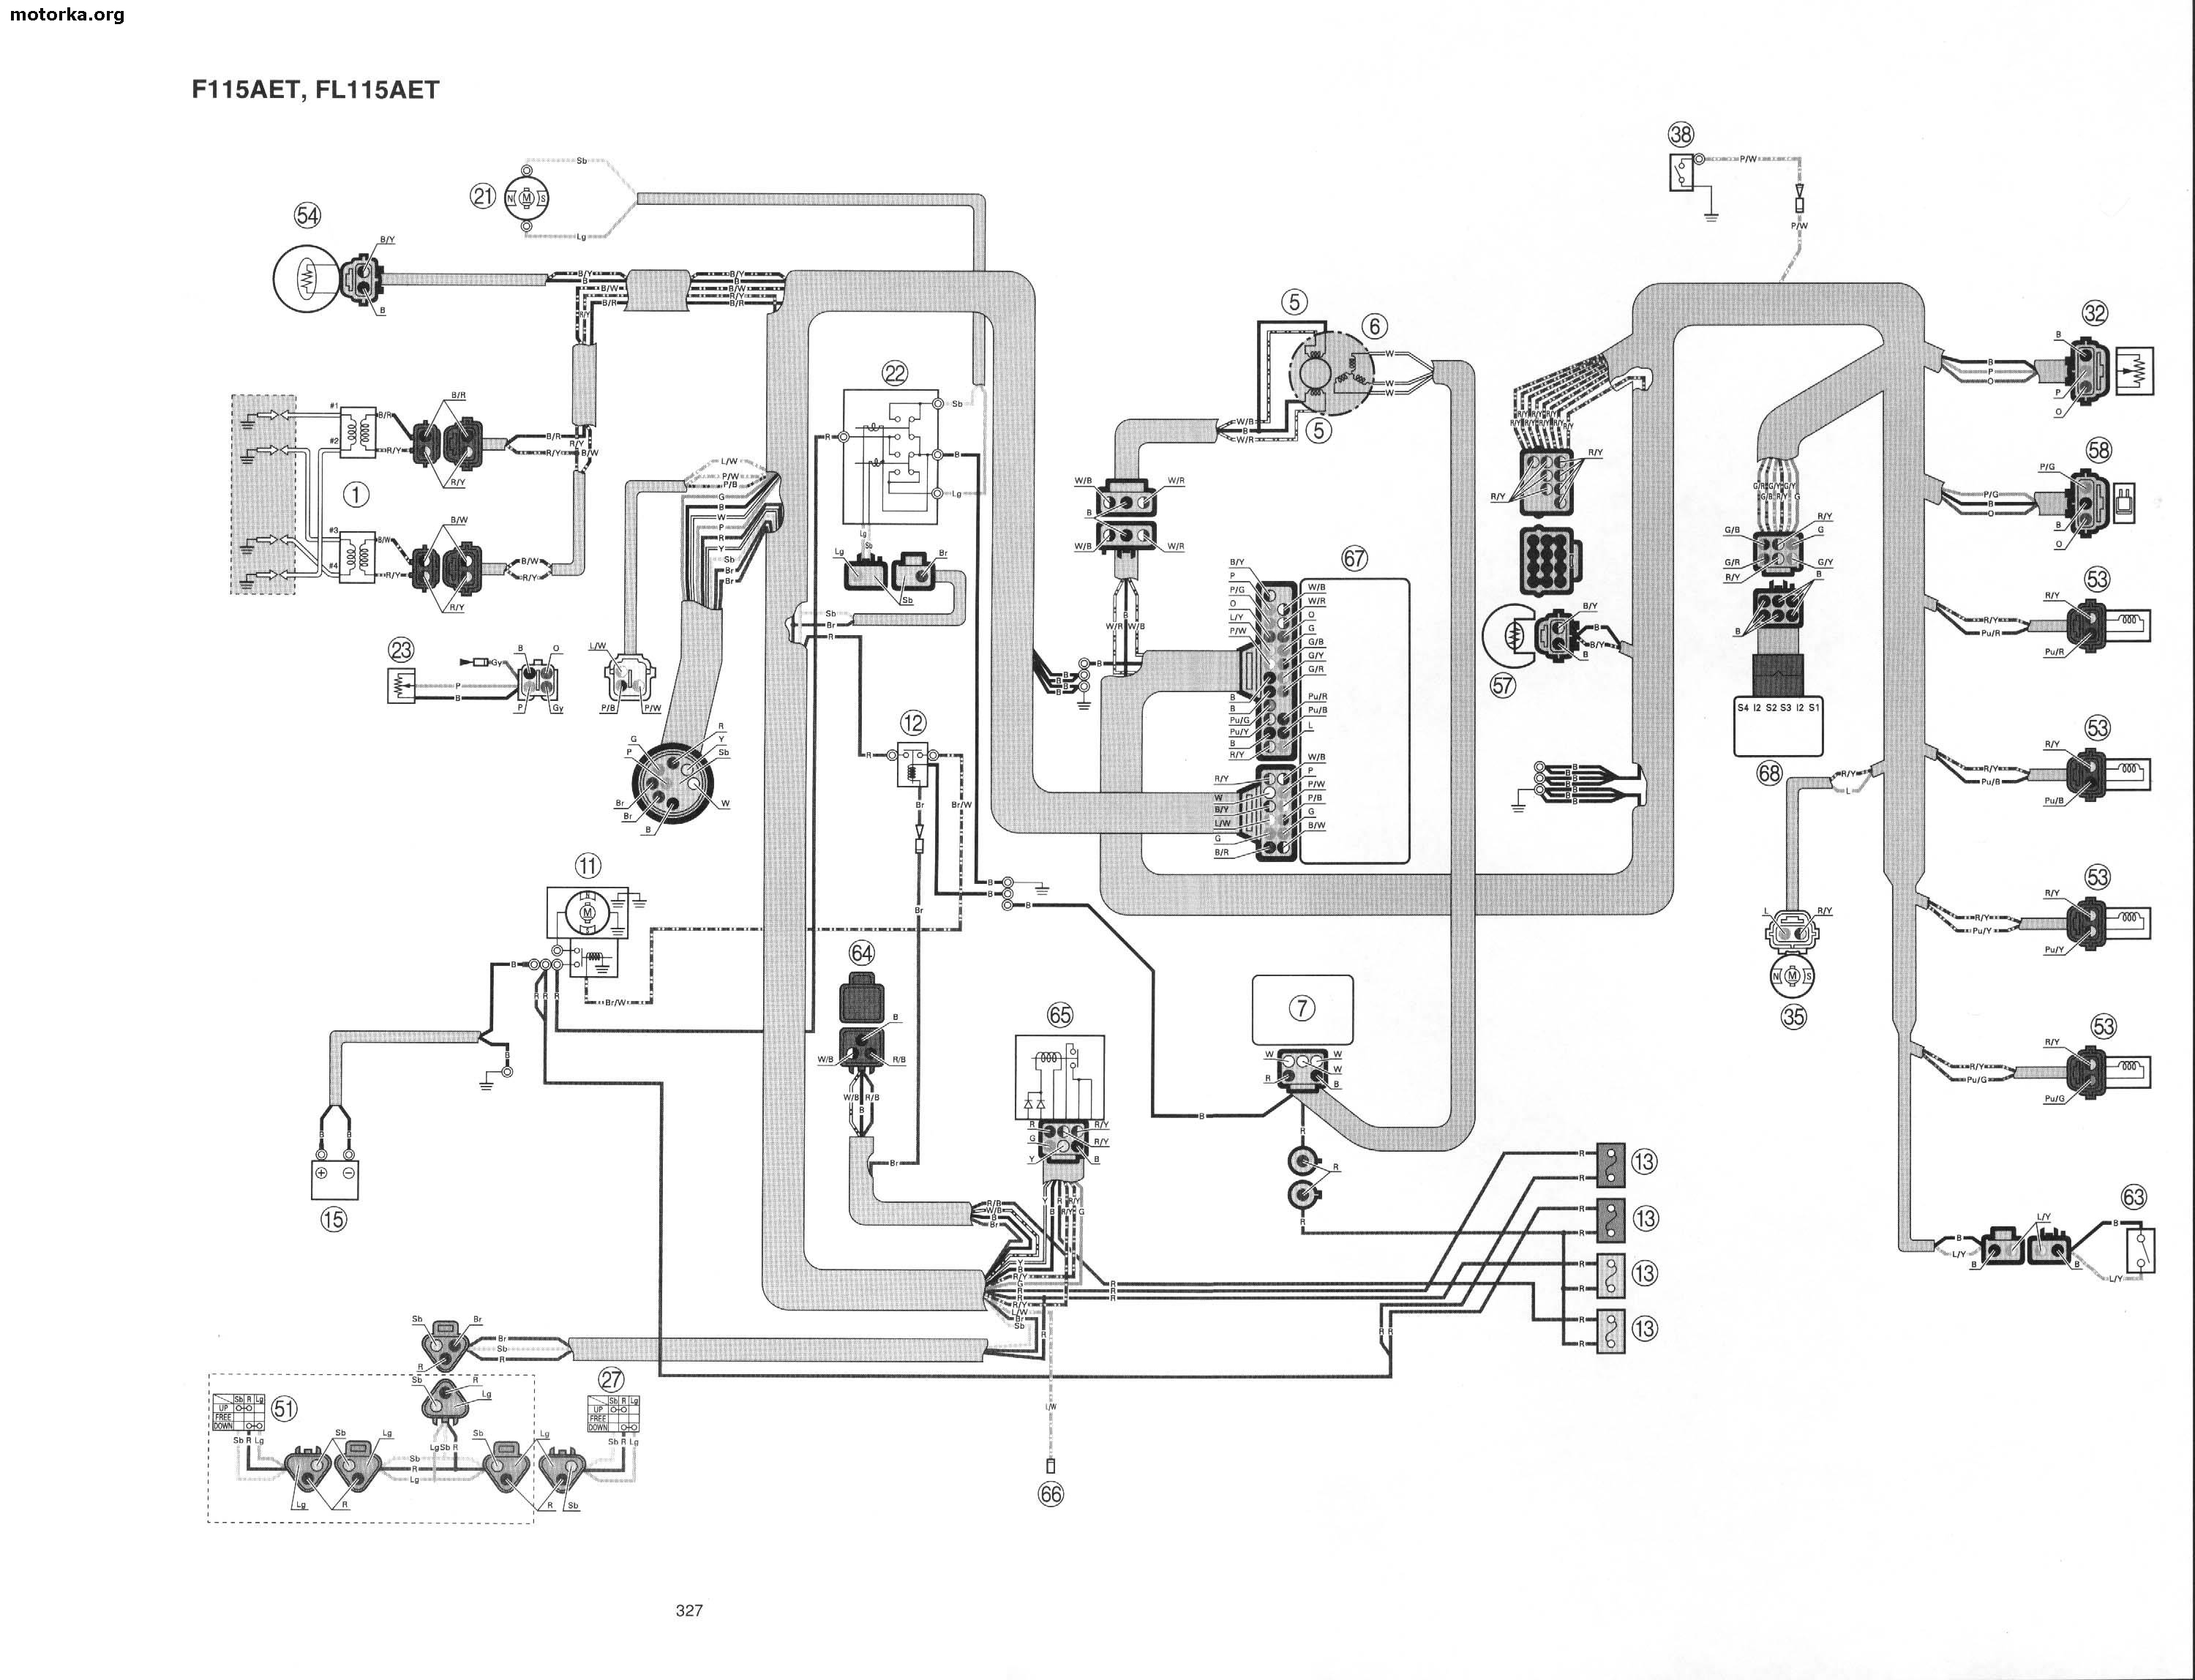 yamaha f200 outboard wiring diagram yamaha f200 cover wiring diagram